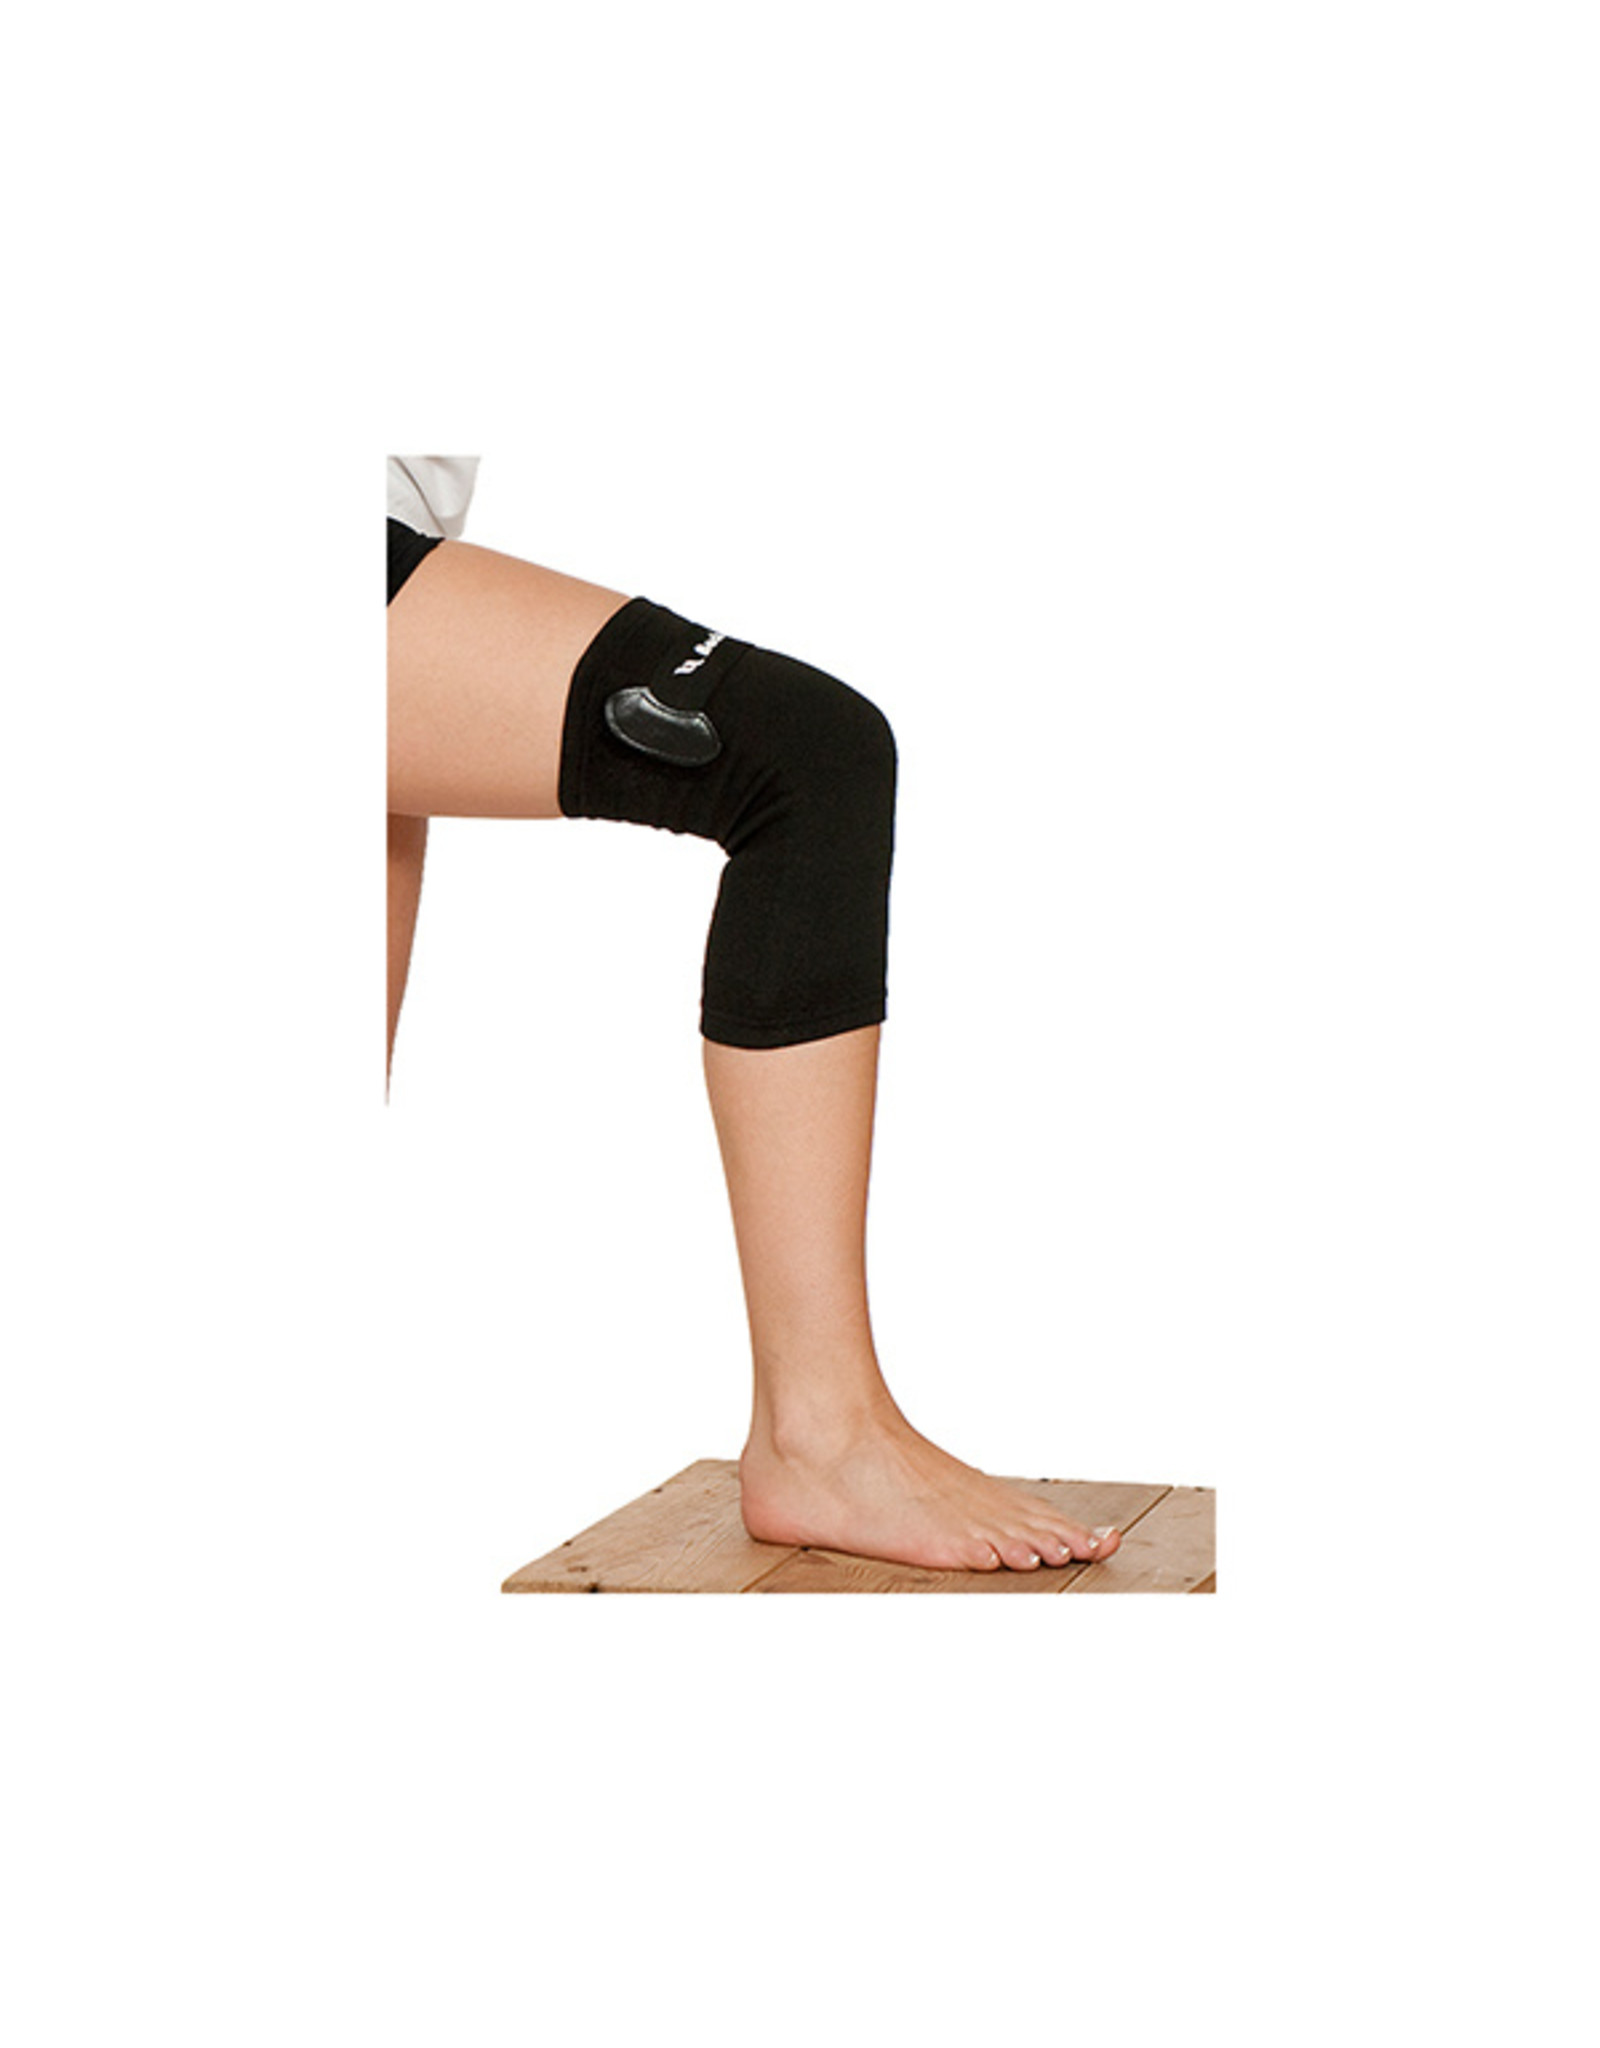 BOT Double Pack Therapeutic Knee Brace